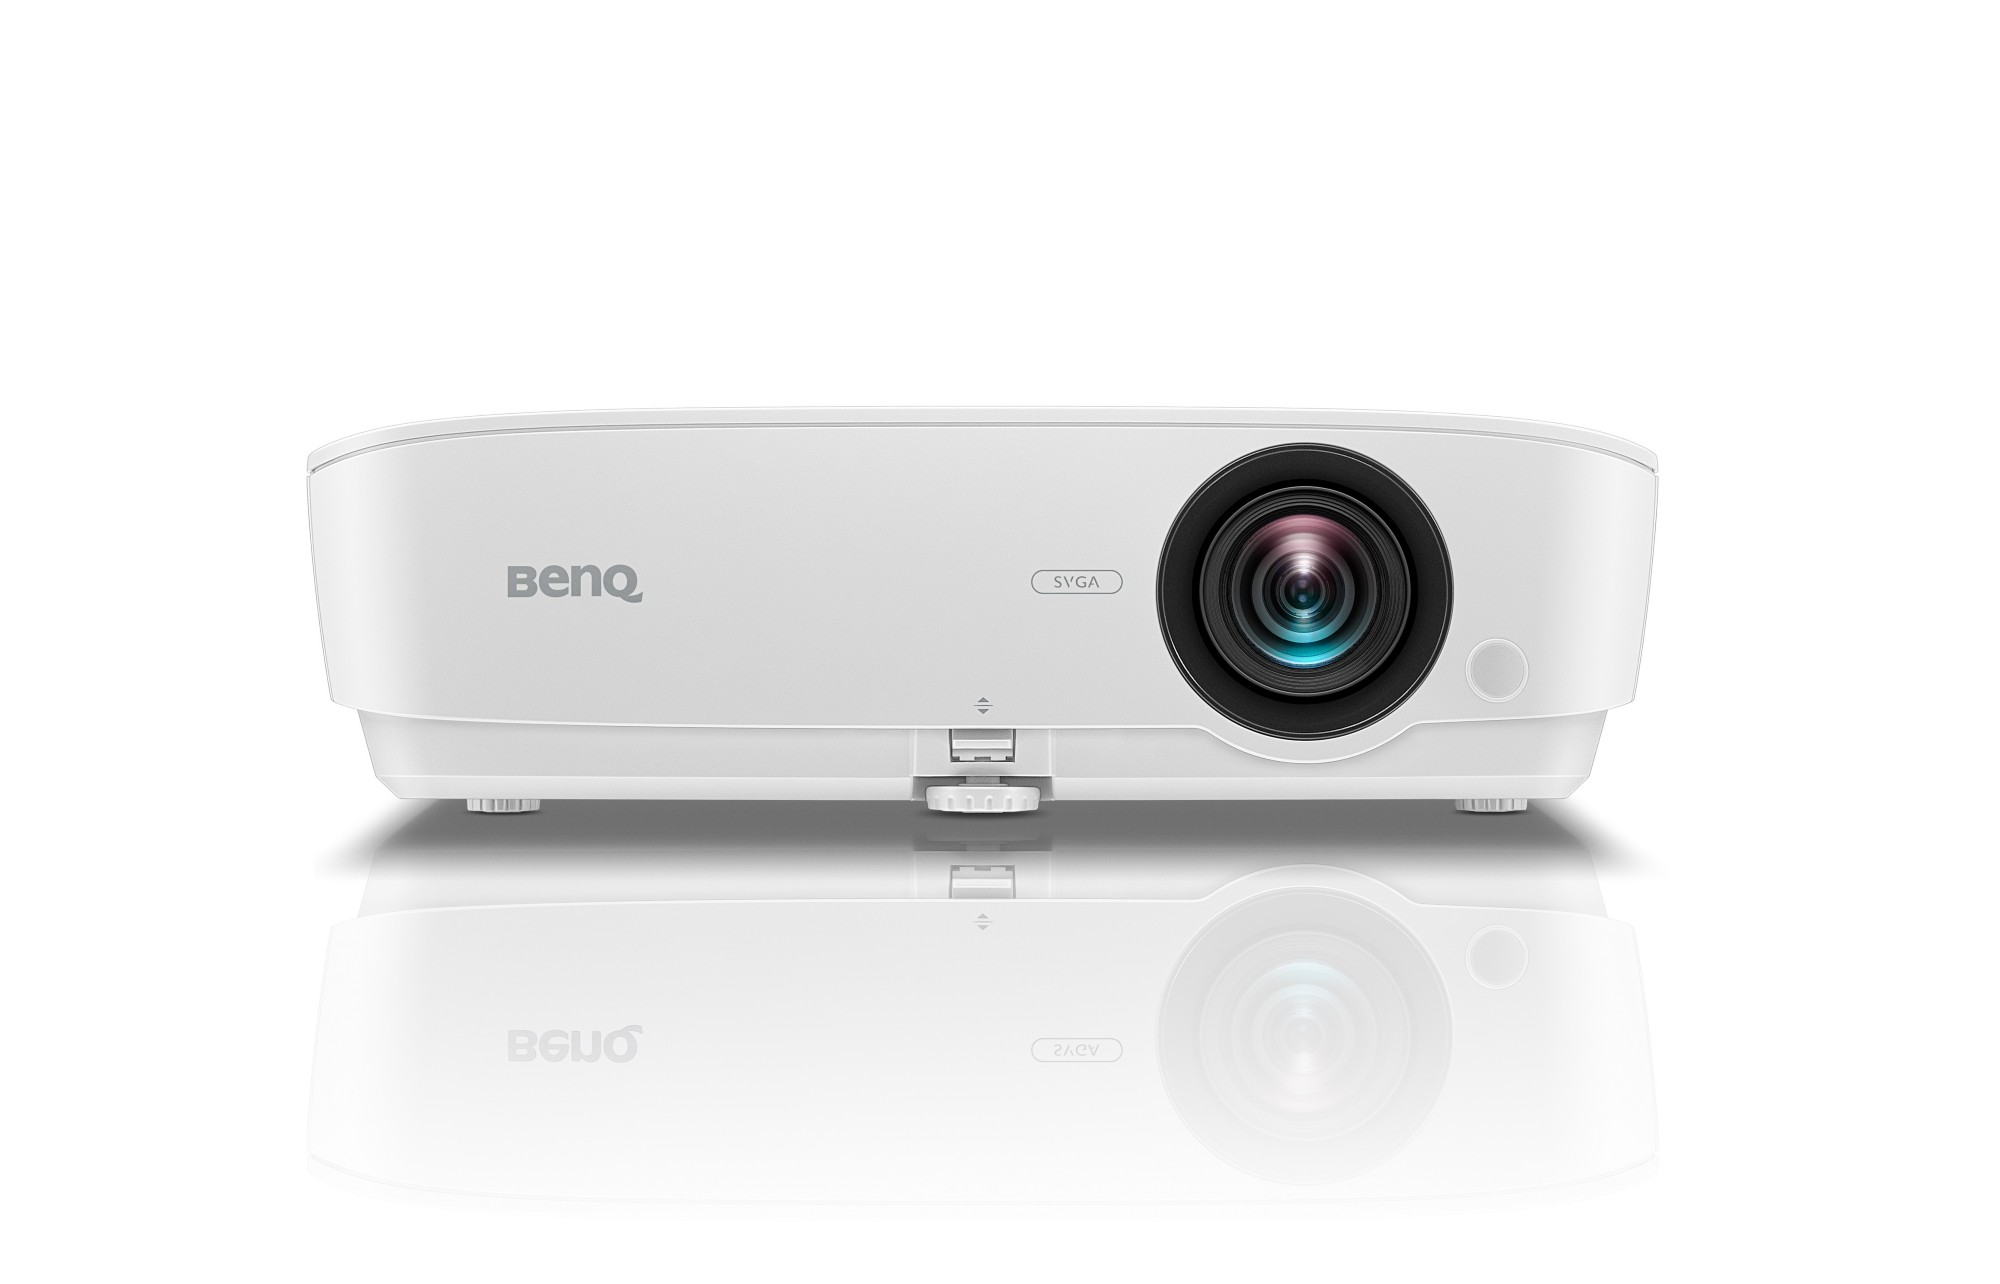 BENQ MS531 WALL-MOUNTED PROJECTOR 3300ANSI LUMENS DLP SVGA (800X600) 3D WHITE DATA